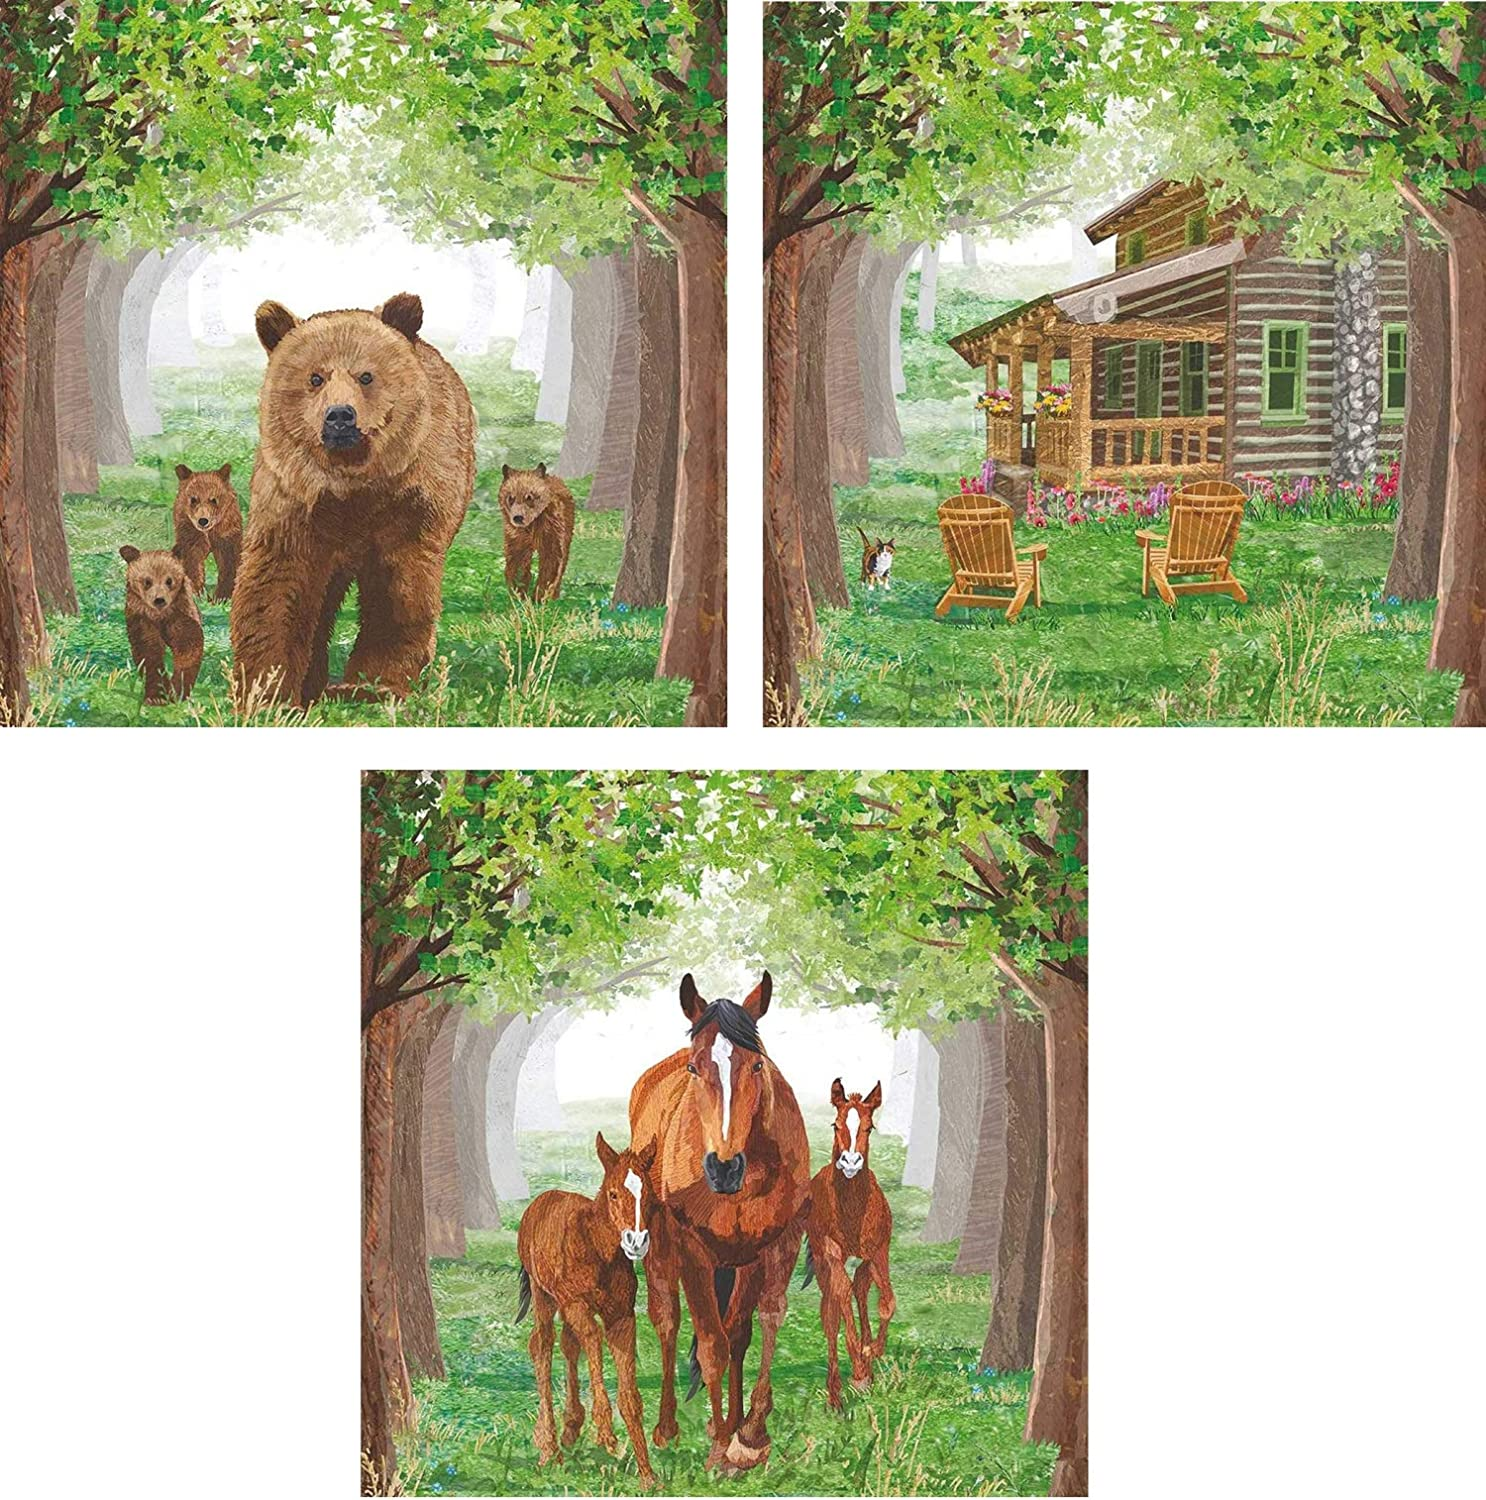 Bundle Of 3 (20 count) Packages Timberland Beverage Cocktail Napkins Featuring Log Cabin, Horses, Bears